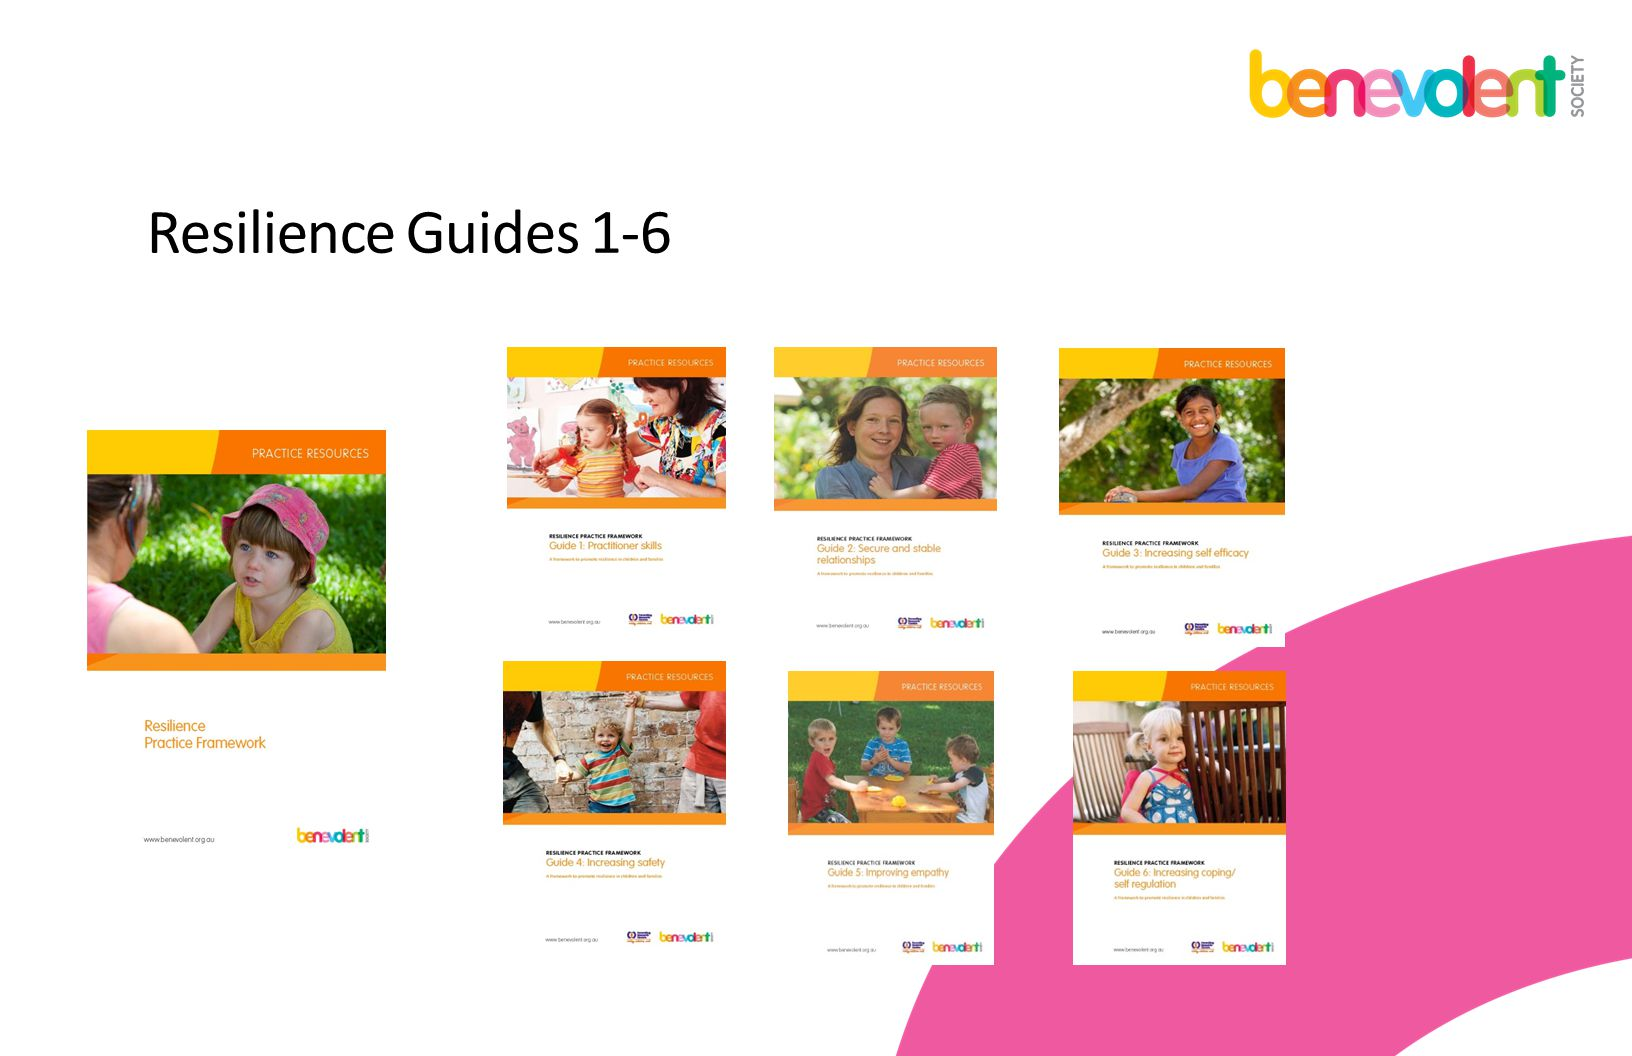 Resilience Guides 1-6